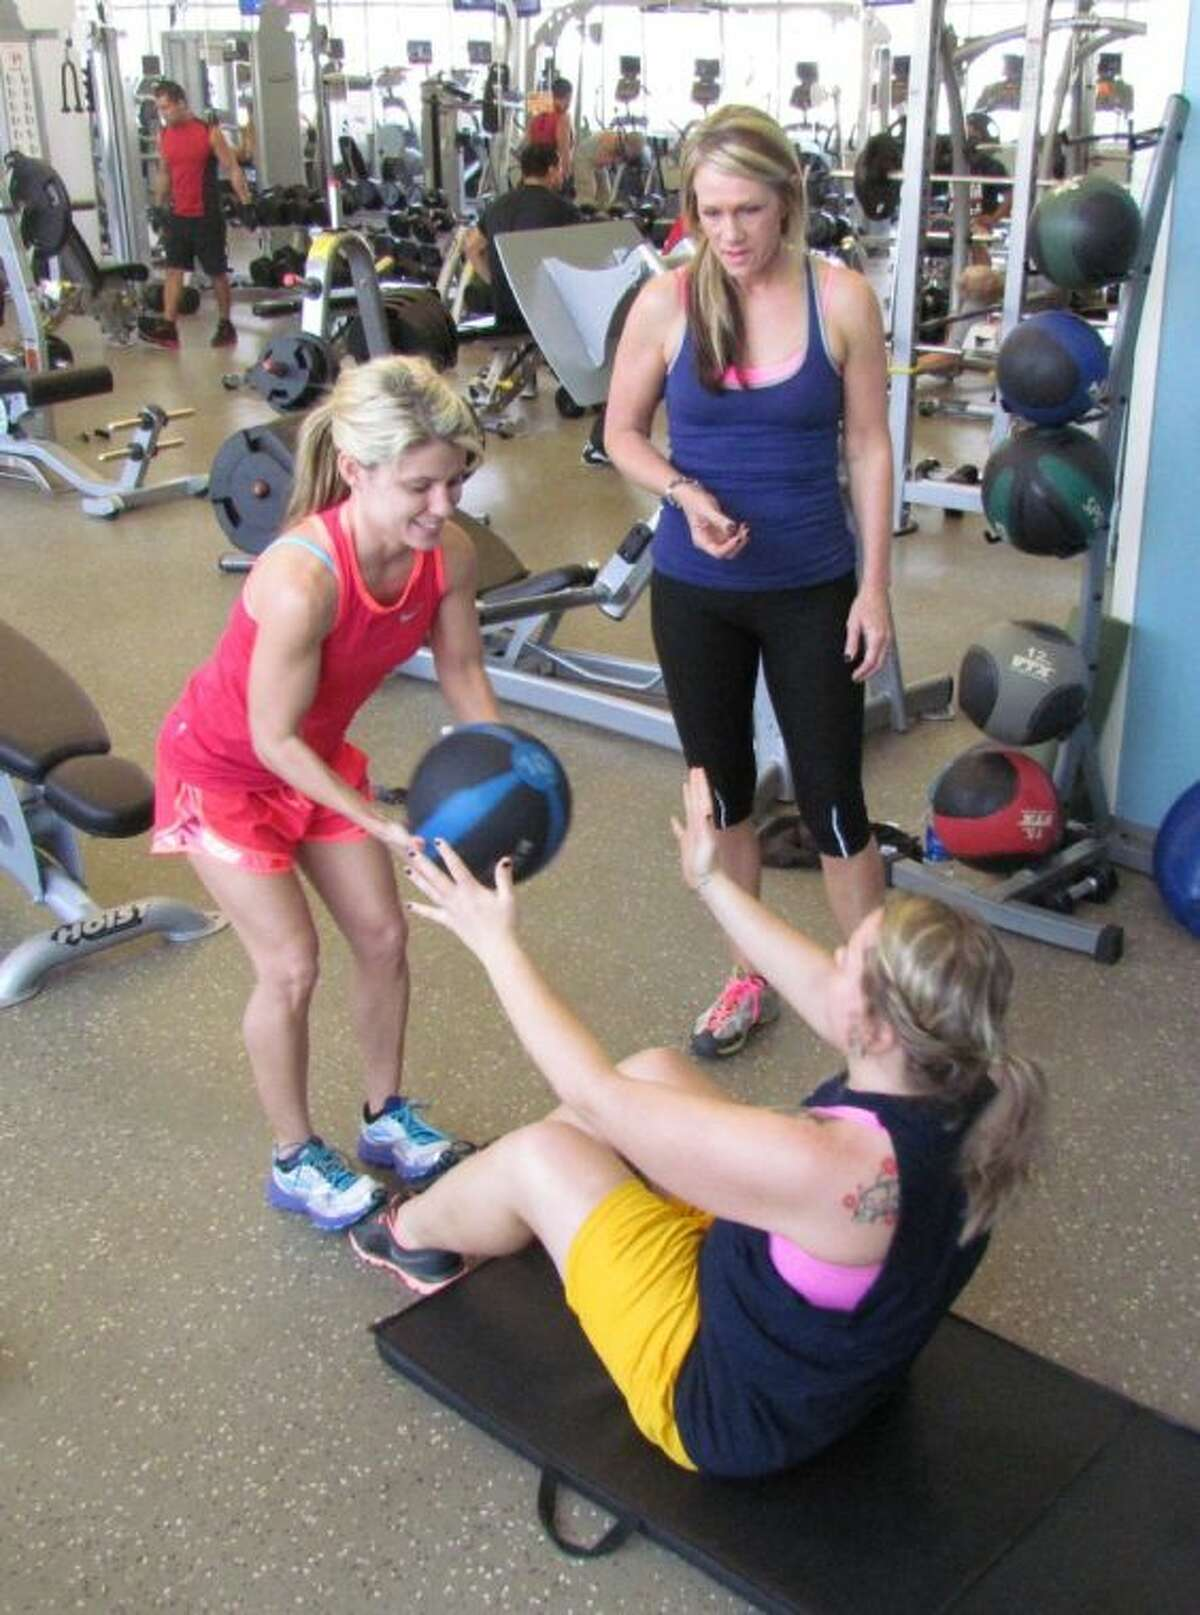 The City of Conroe's C.K. Ray Recreation Center offers personal training sessions on an ongoing basis.